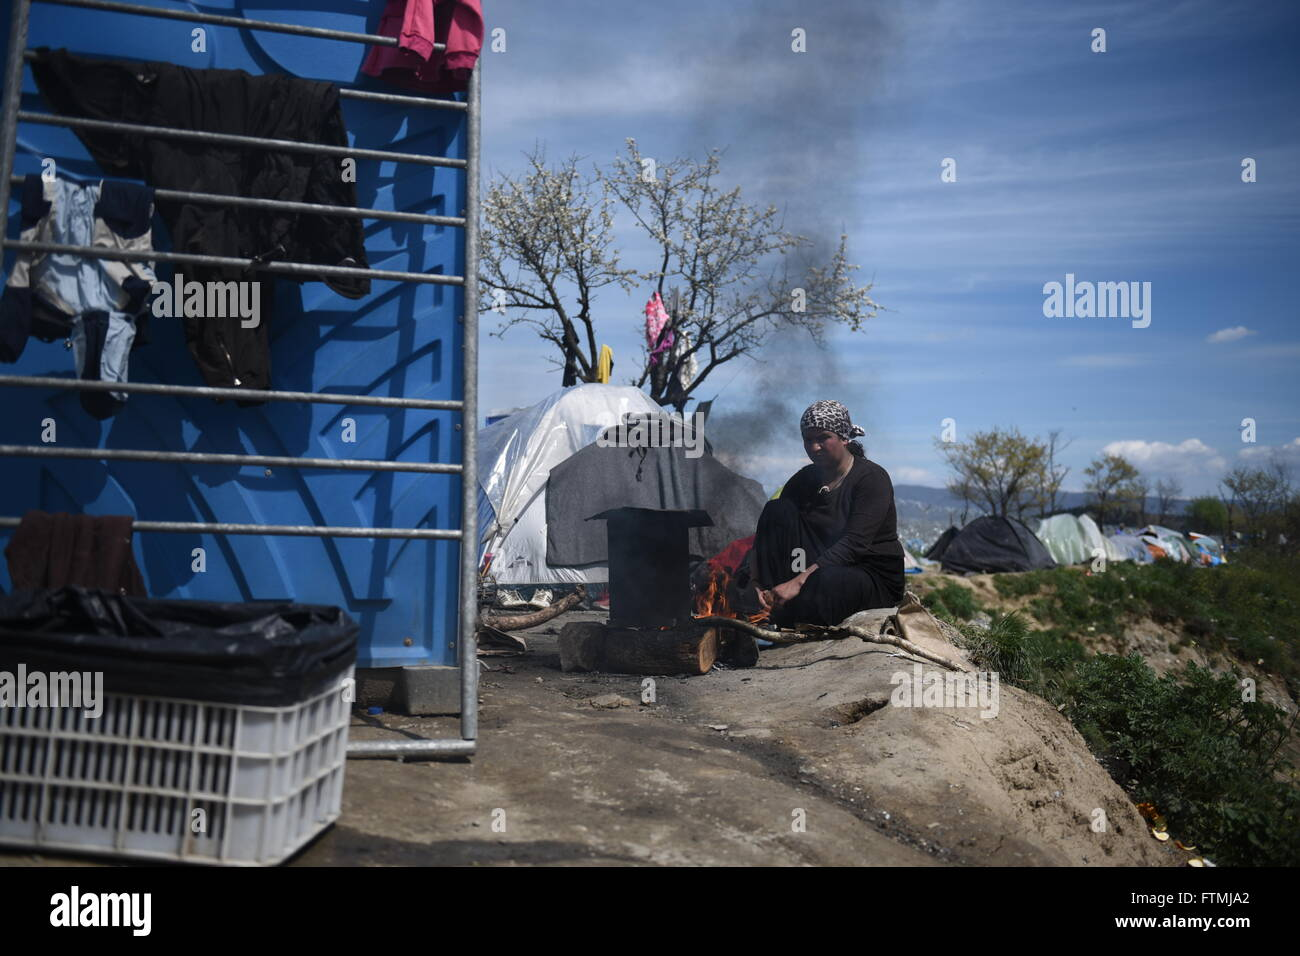 A woman sits near a fire, as refugees and migrants remain stranded at the closed Greek Macedonian border, near the - Stock Image